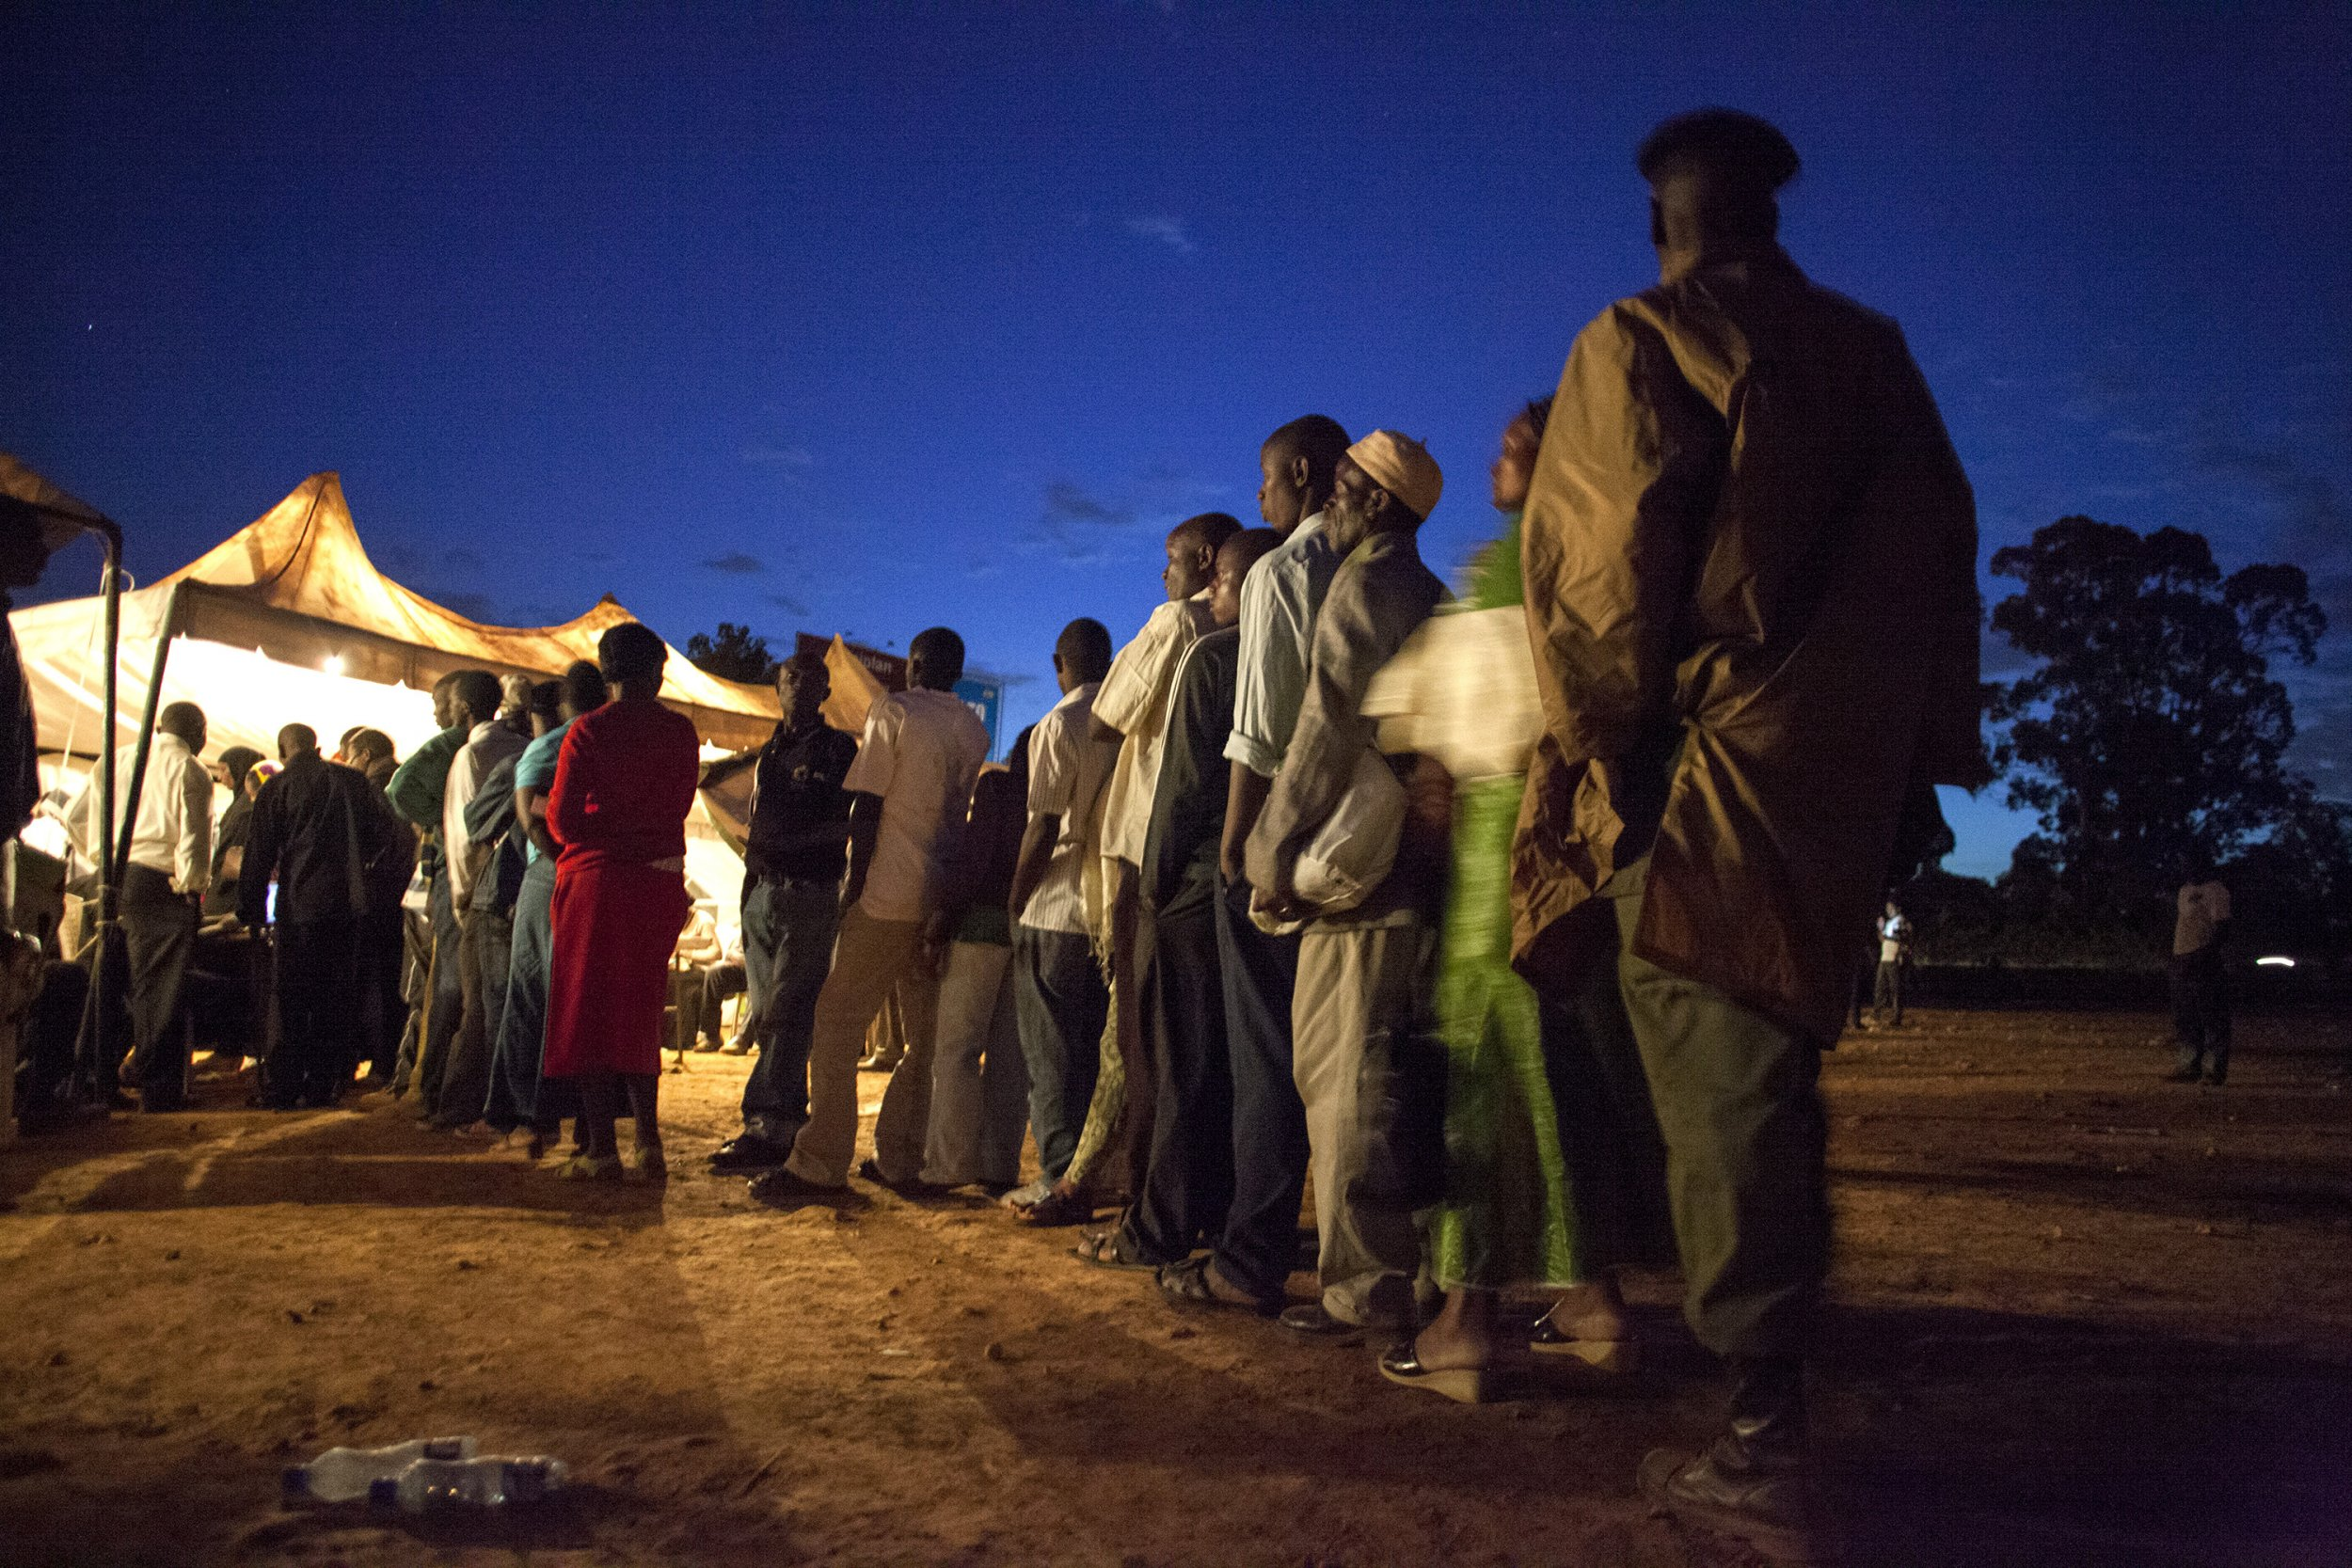 Kenyan voters during the 2013 elections.